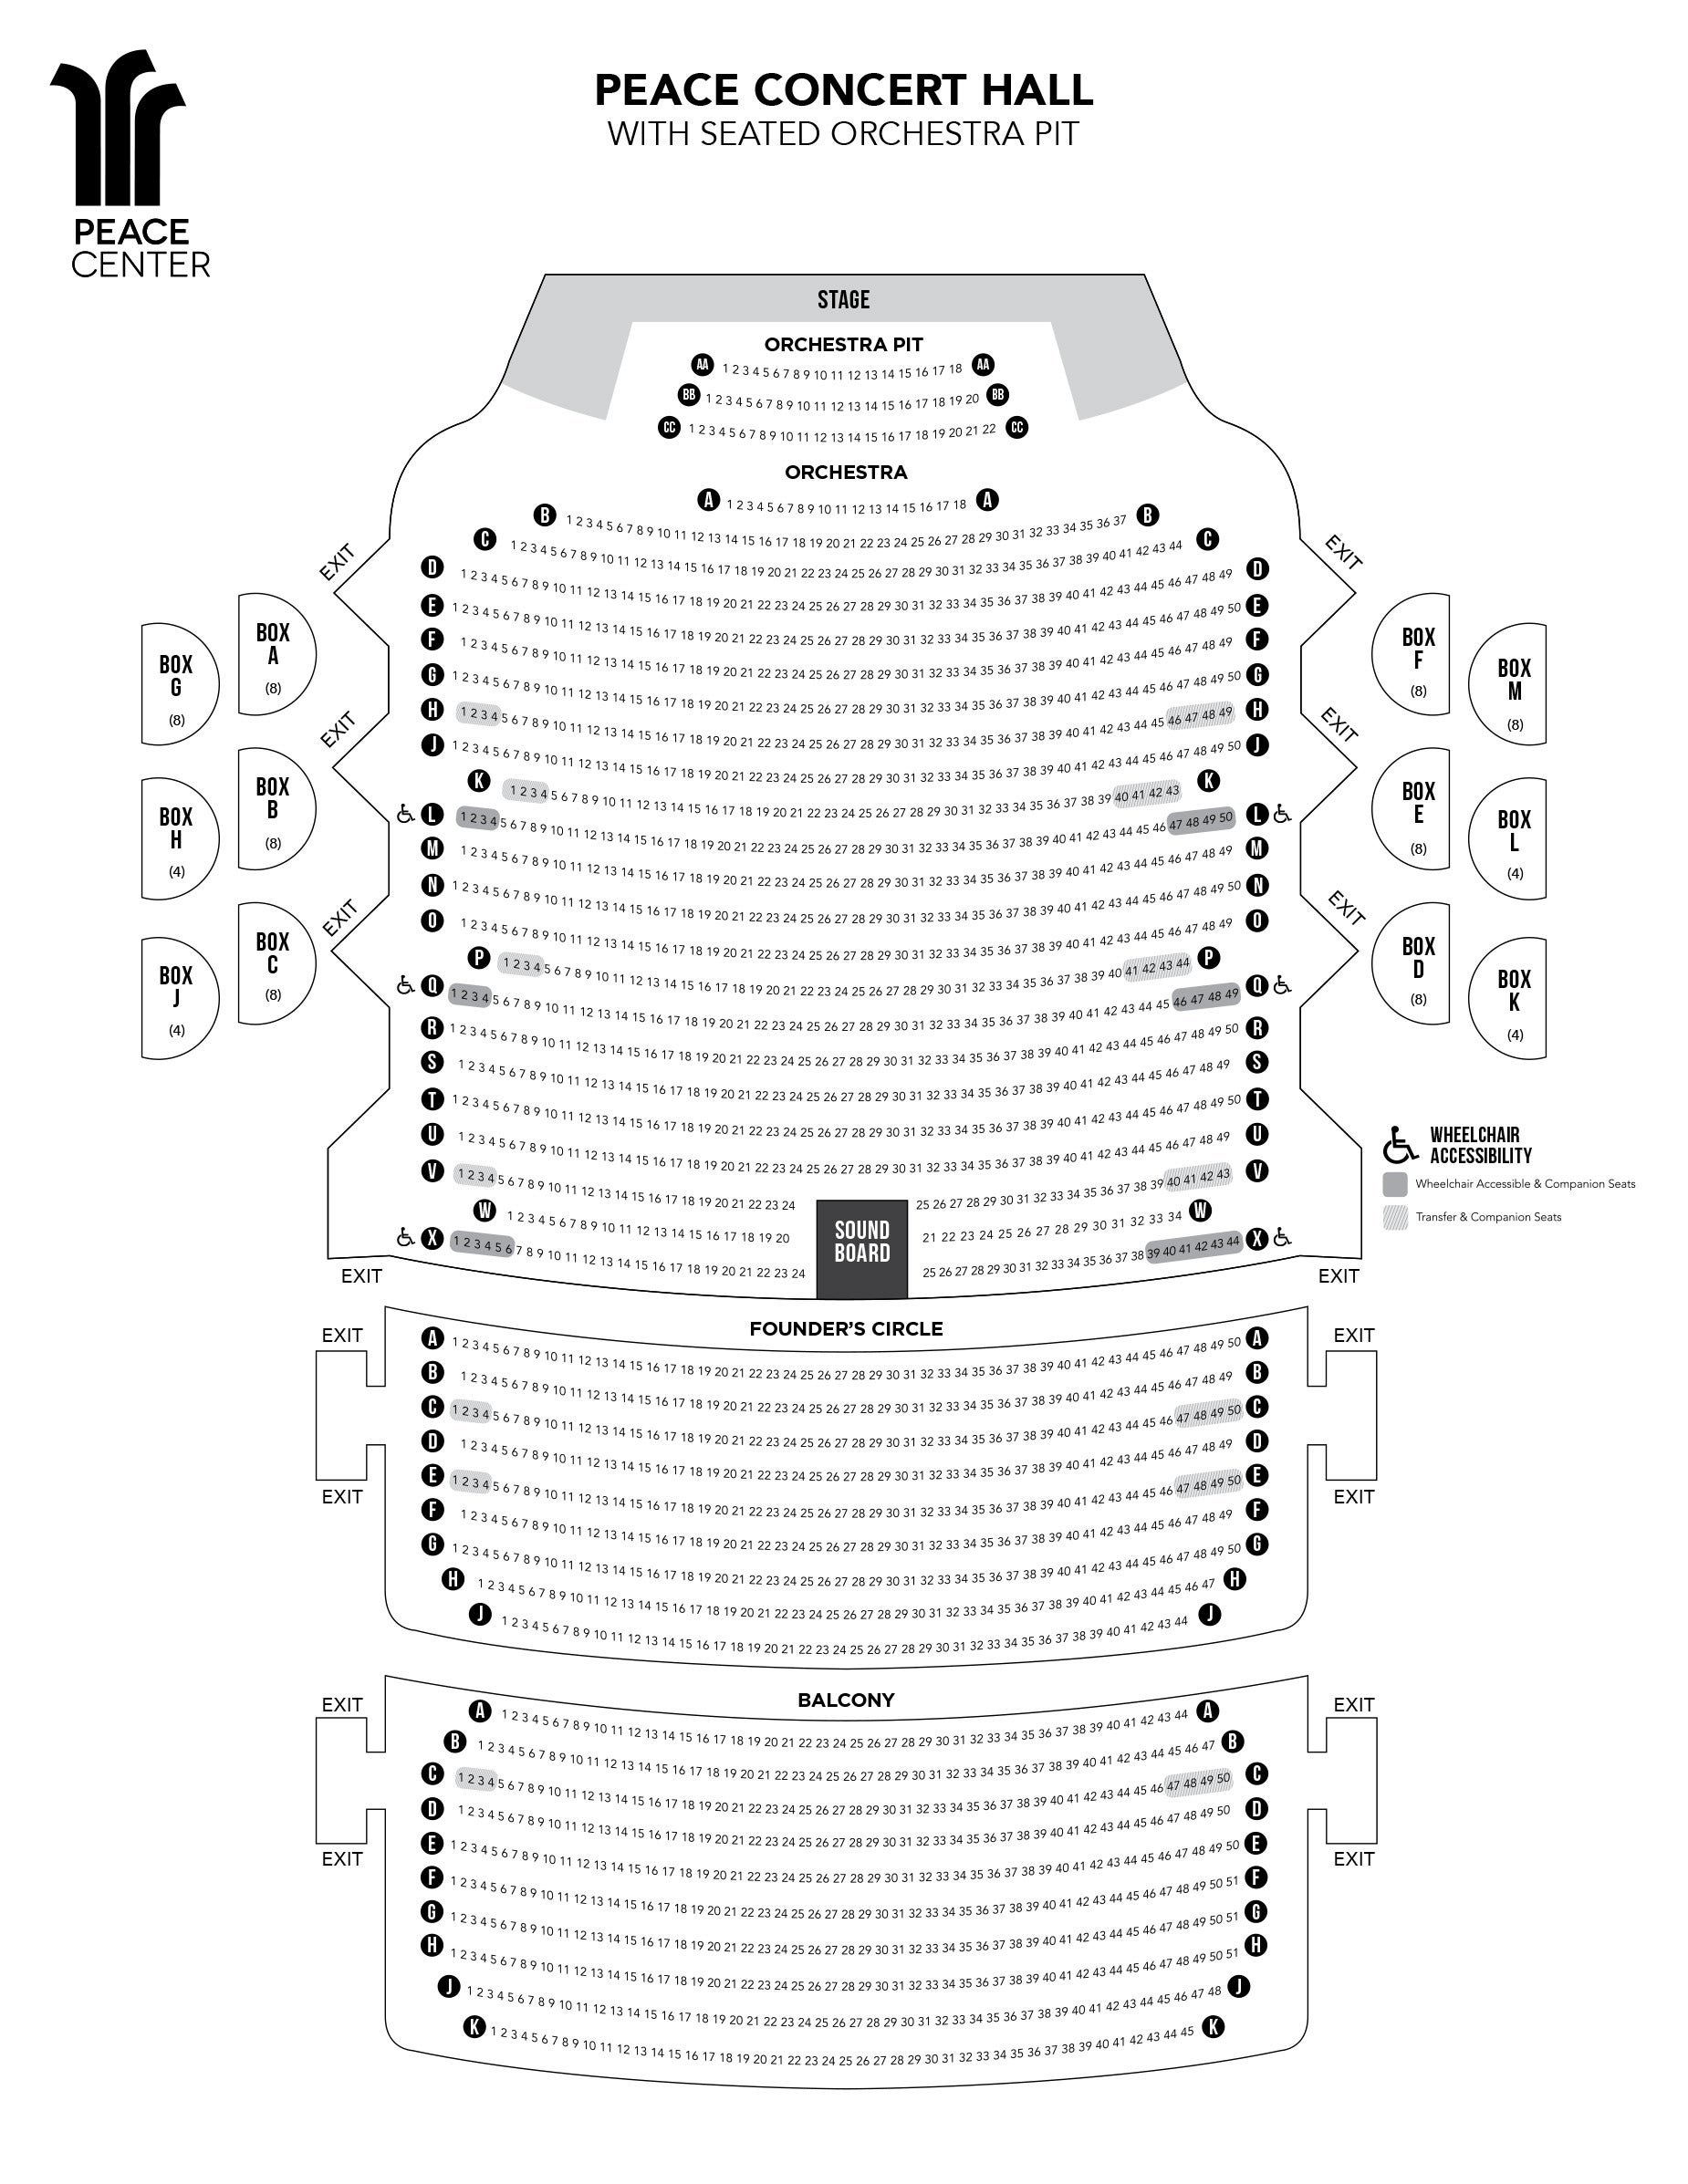 Seating Charts Peace Center